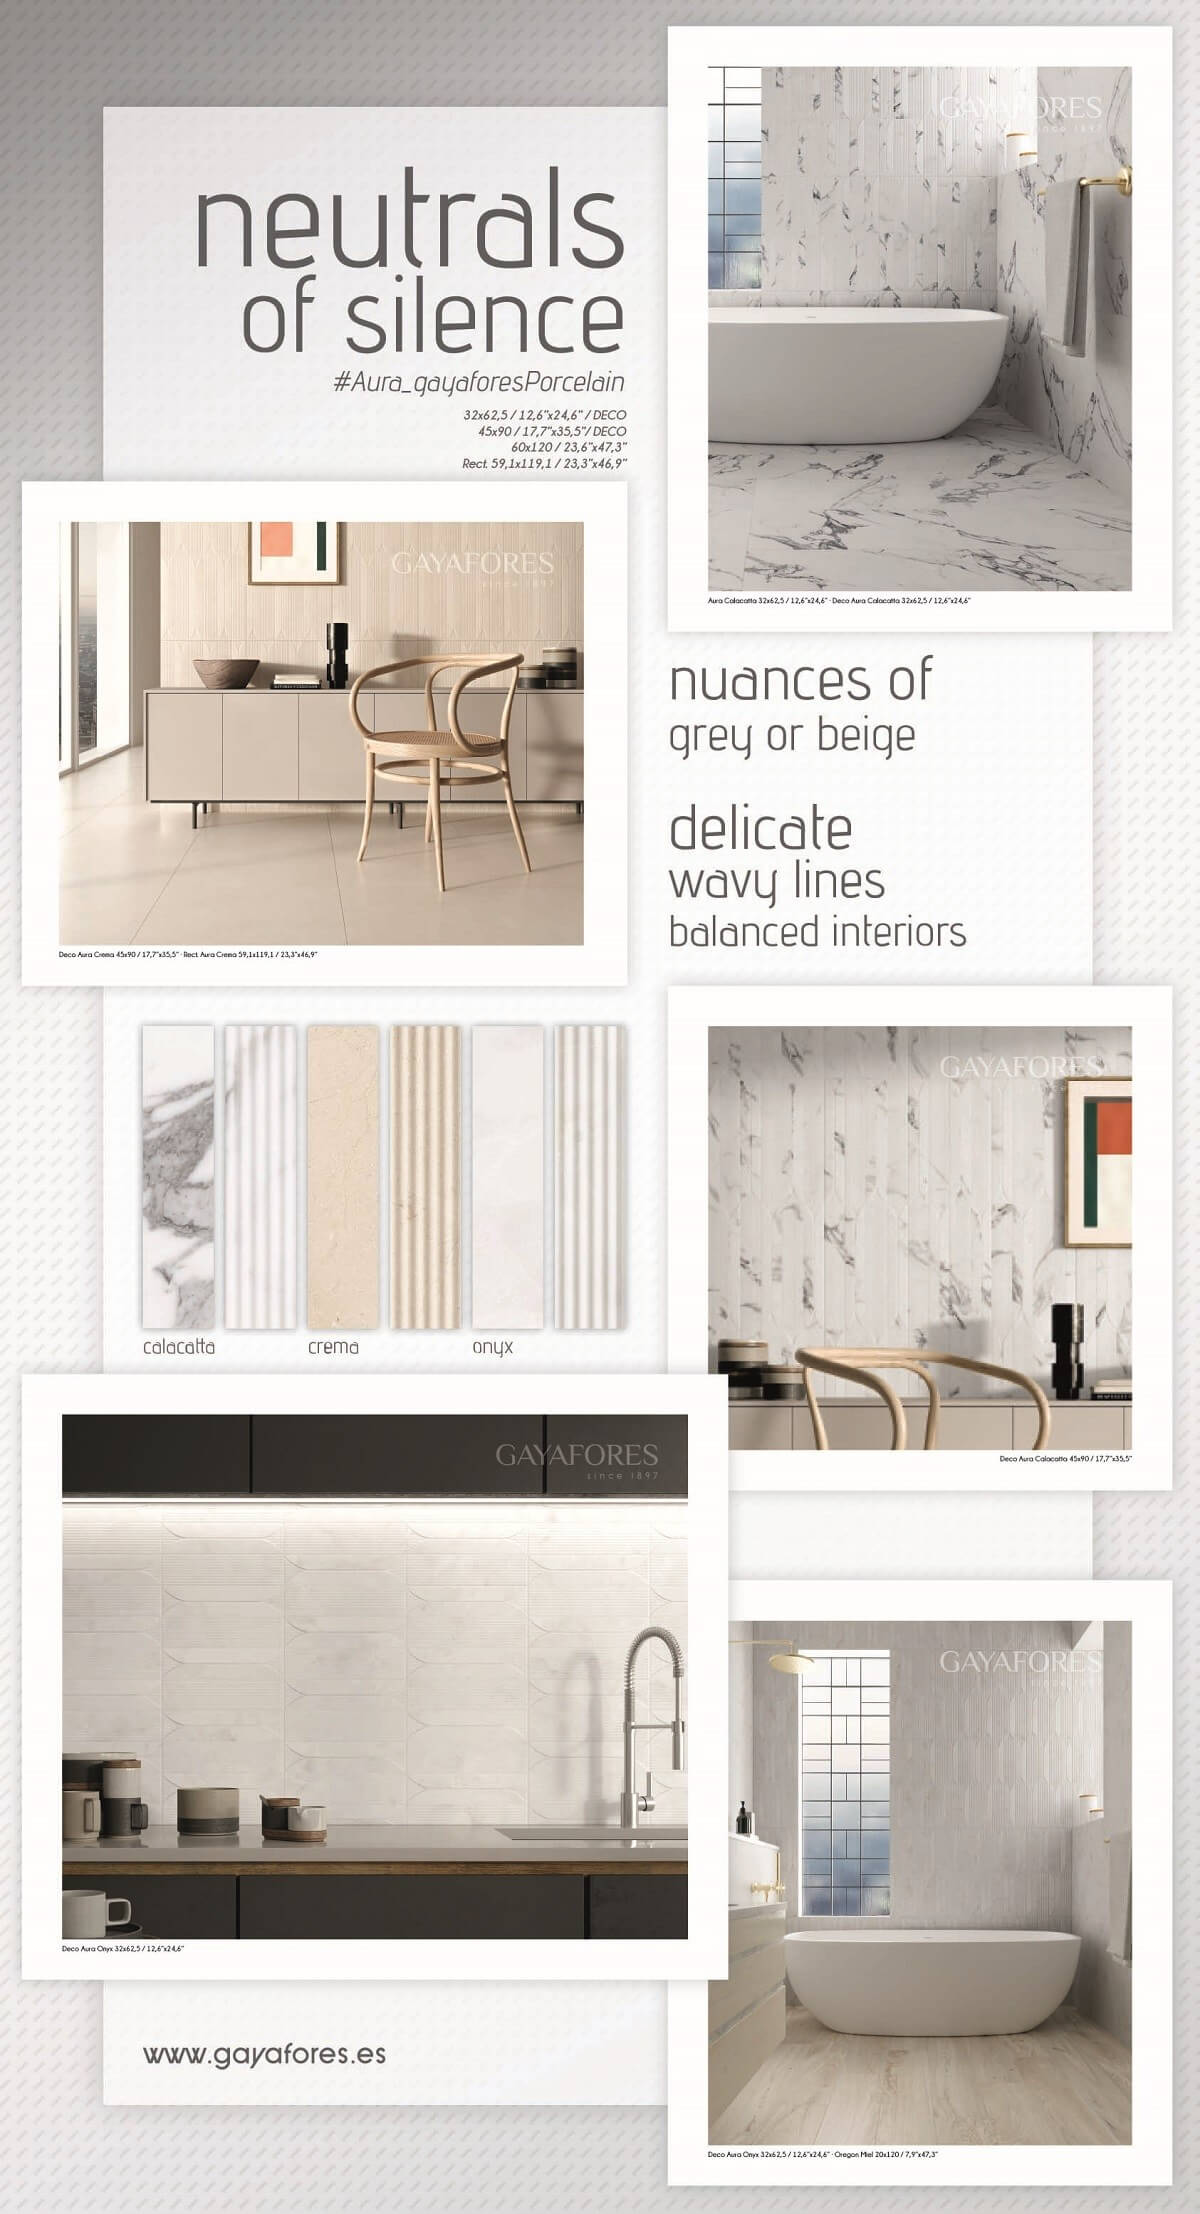 Moodboard made with Aura Collection Gayafores